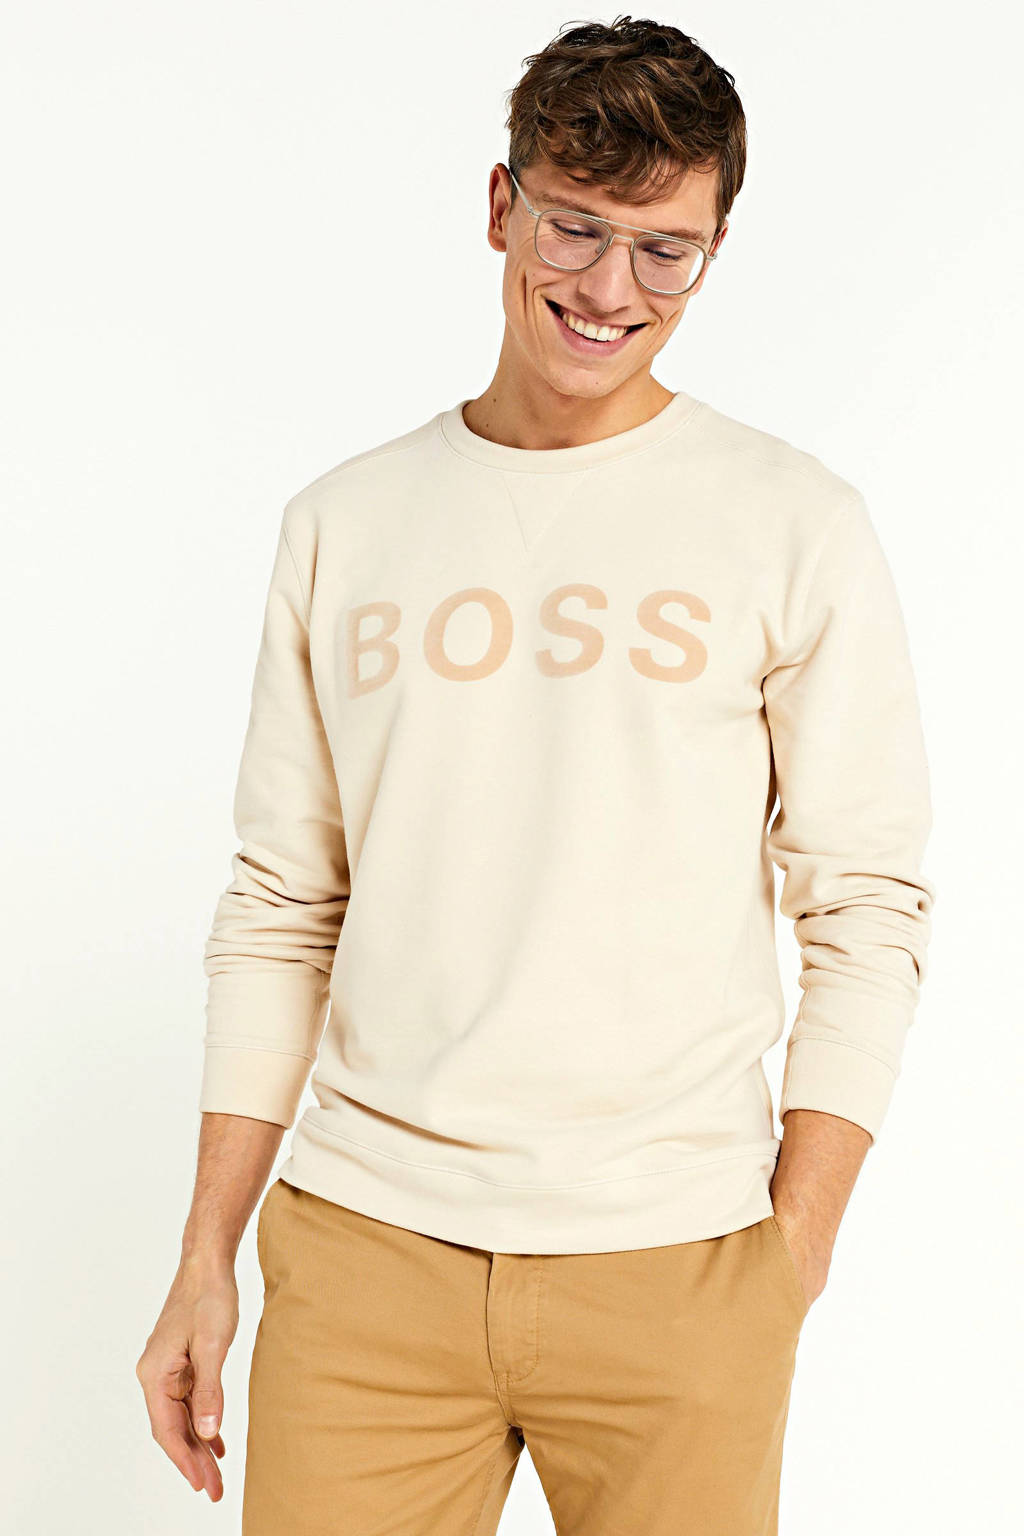 BOSS Casual sweater met logo ecru, Ecru